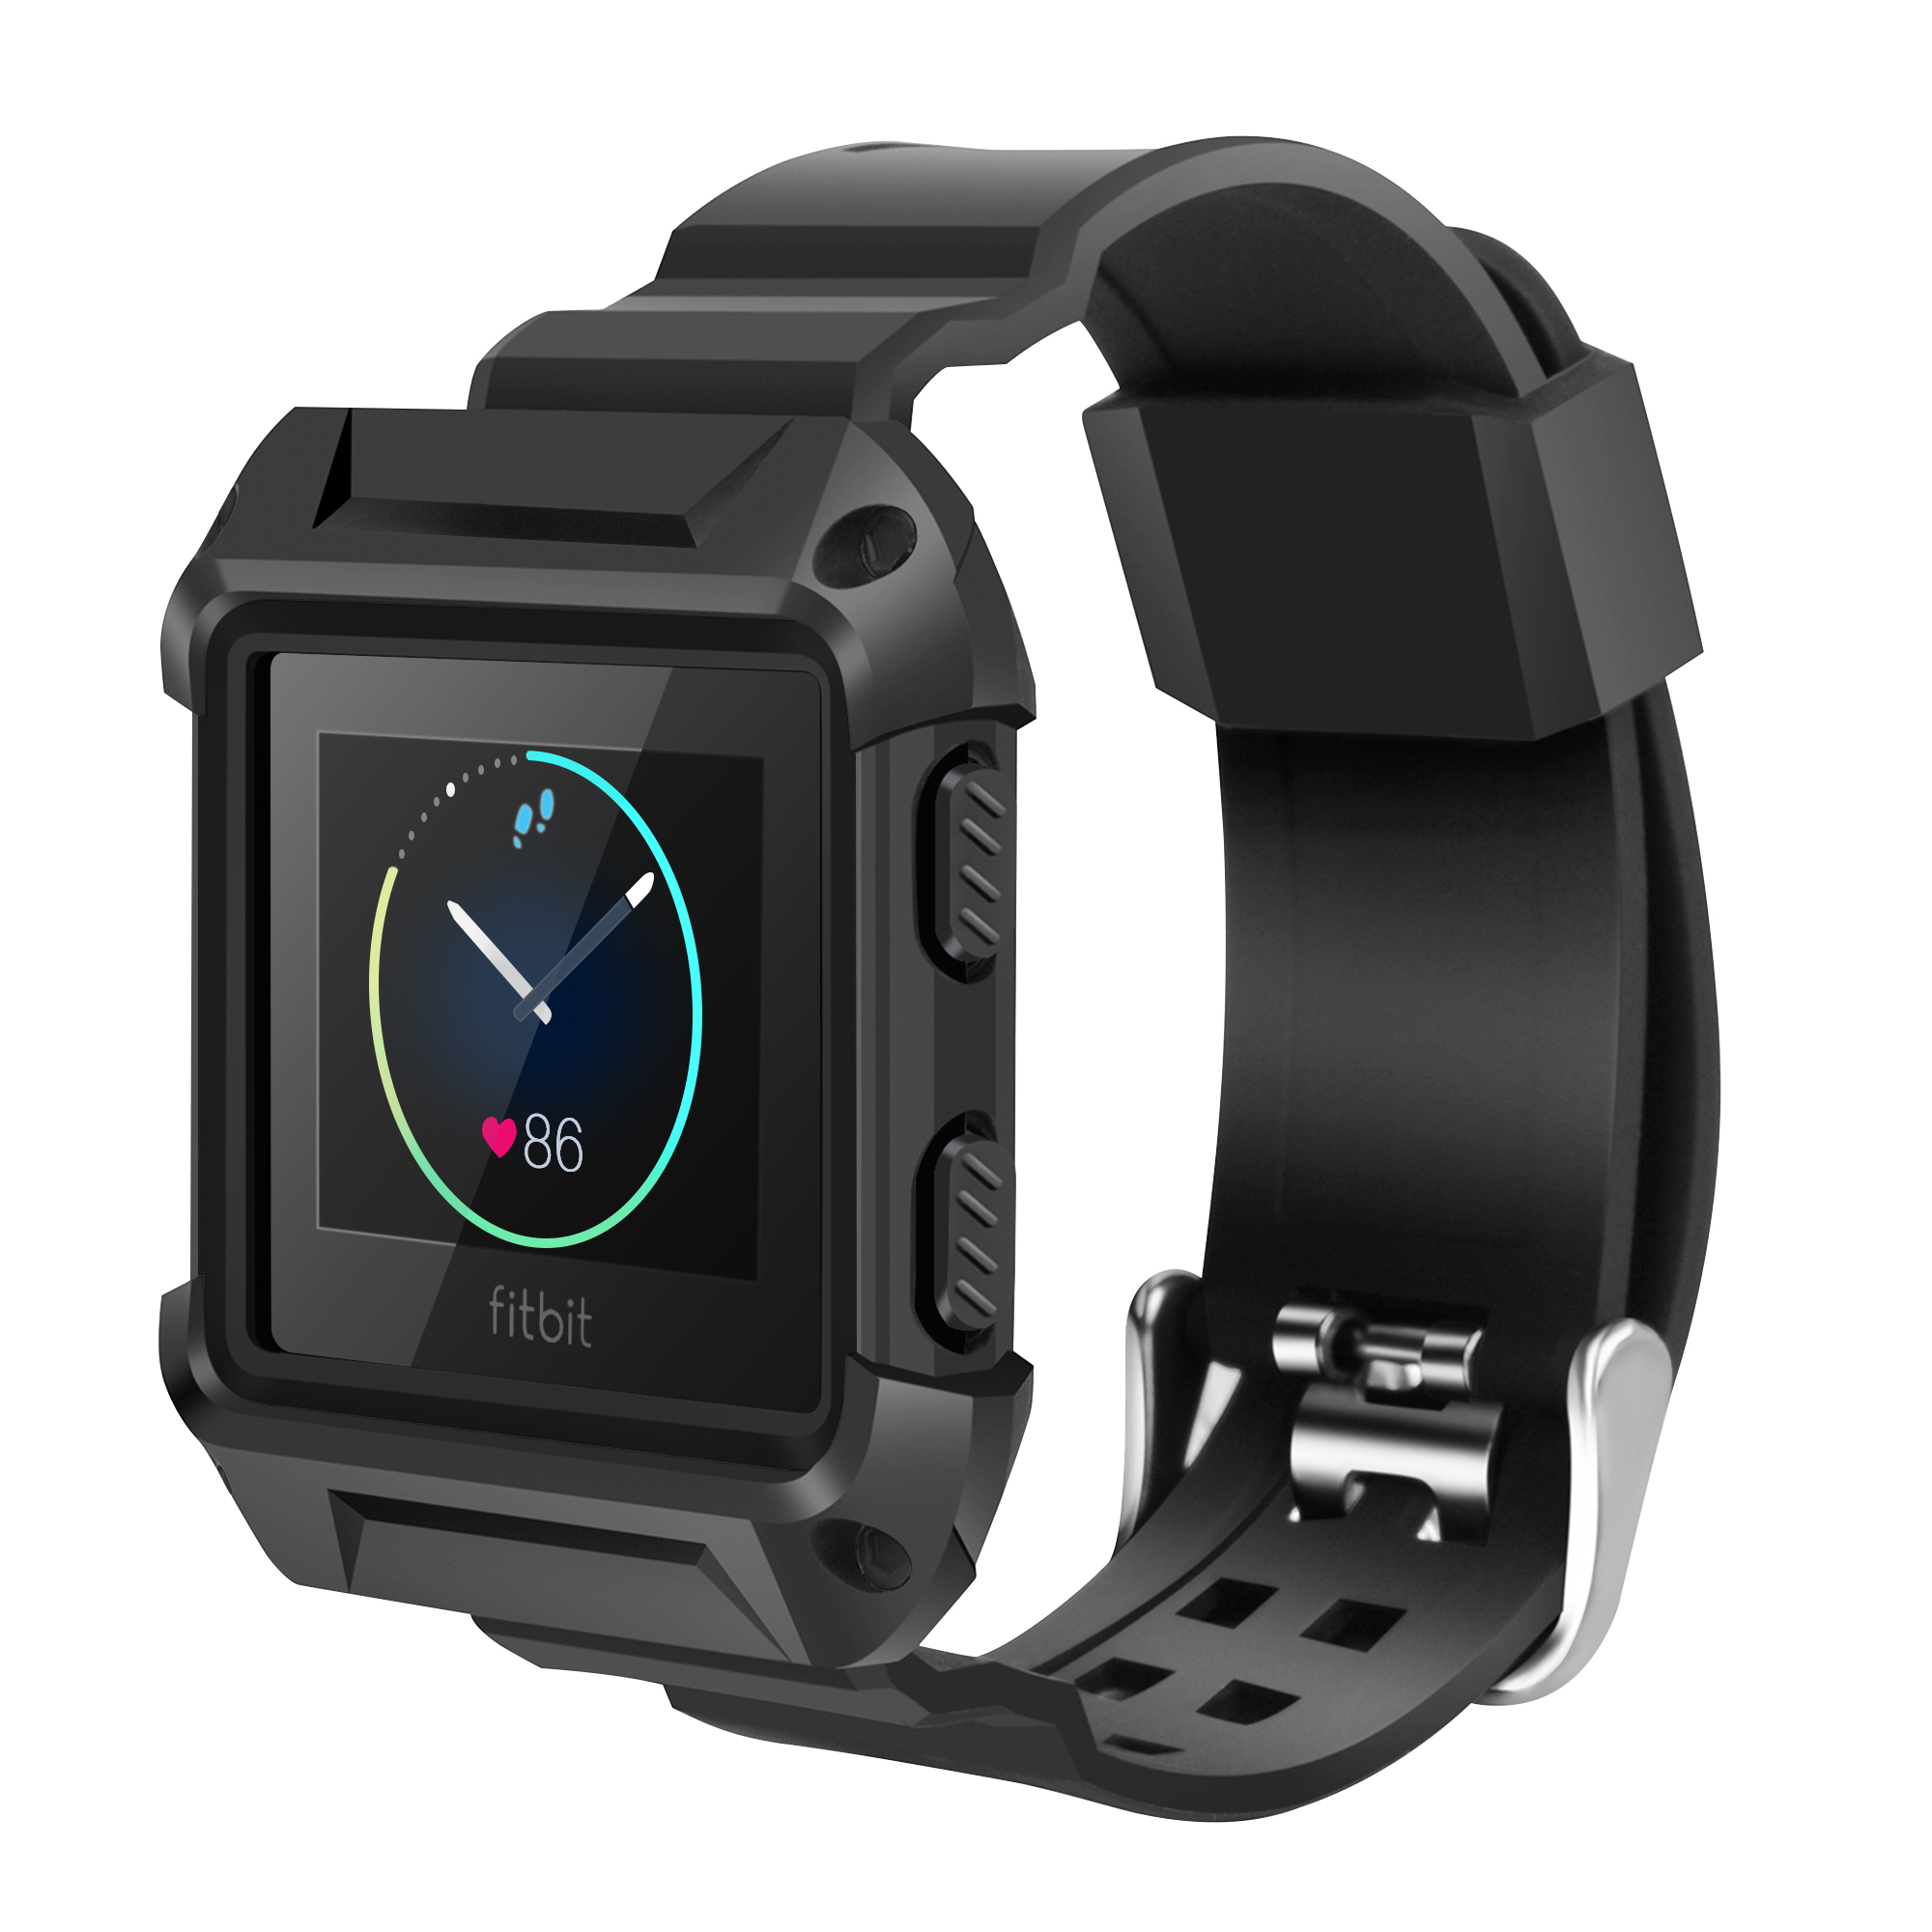 For Fitbit Blaze Bands with Protective Case, Rugged Case Strap Bands for Fitbit Blaze Fitness Smart Watch (Black)